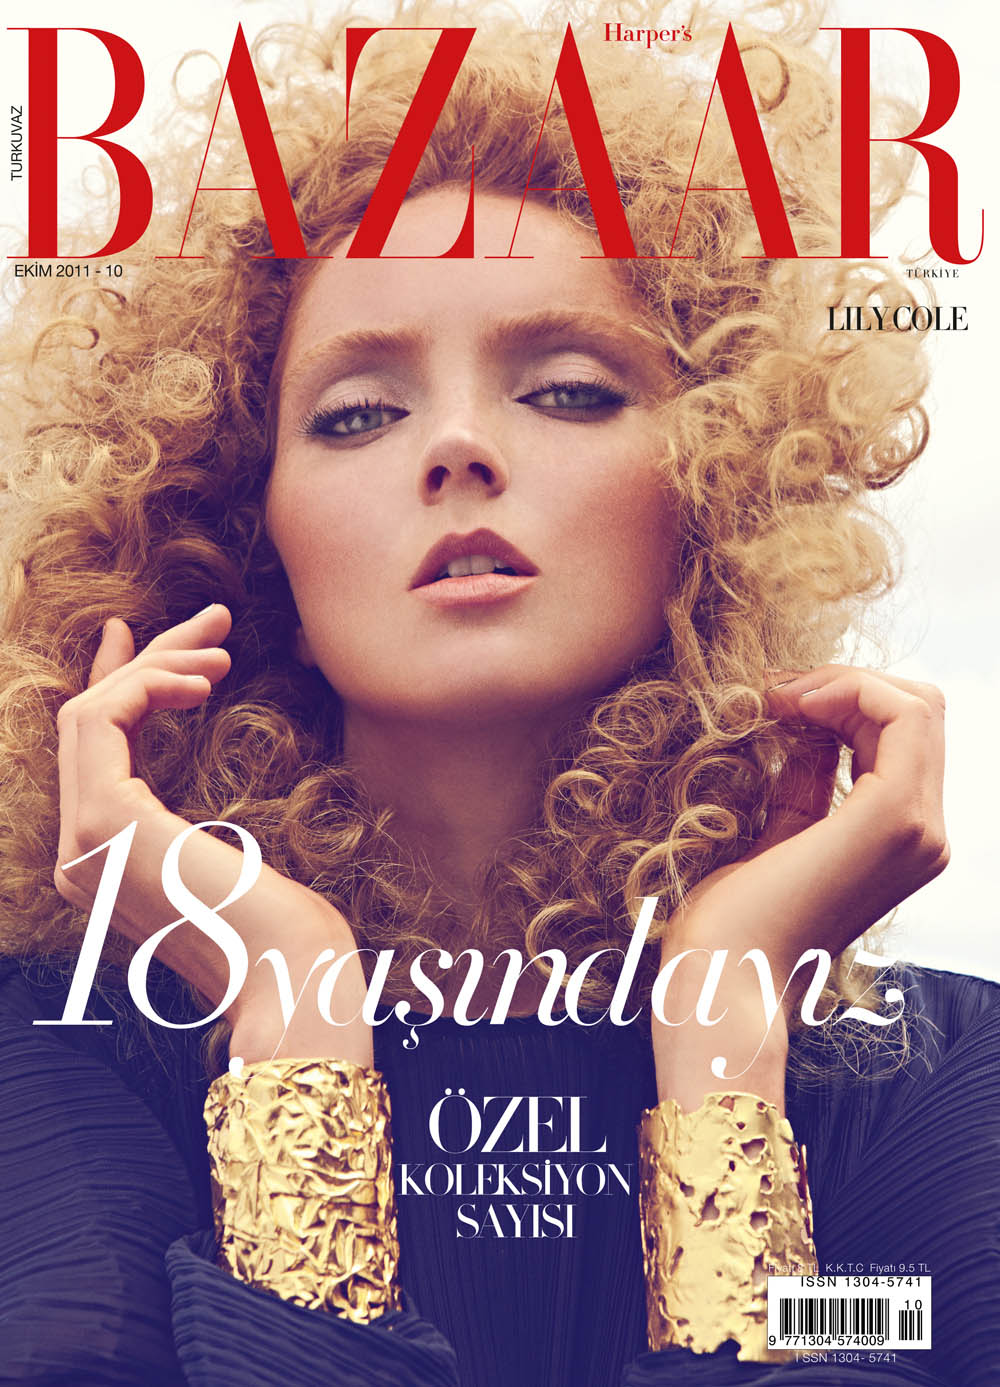 LILY COLE FOR HARPER'S BAZAAR